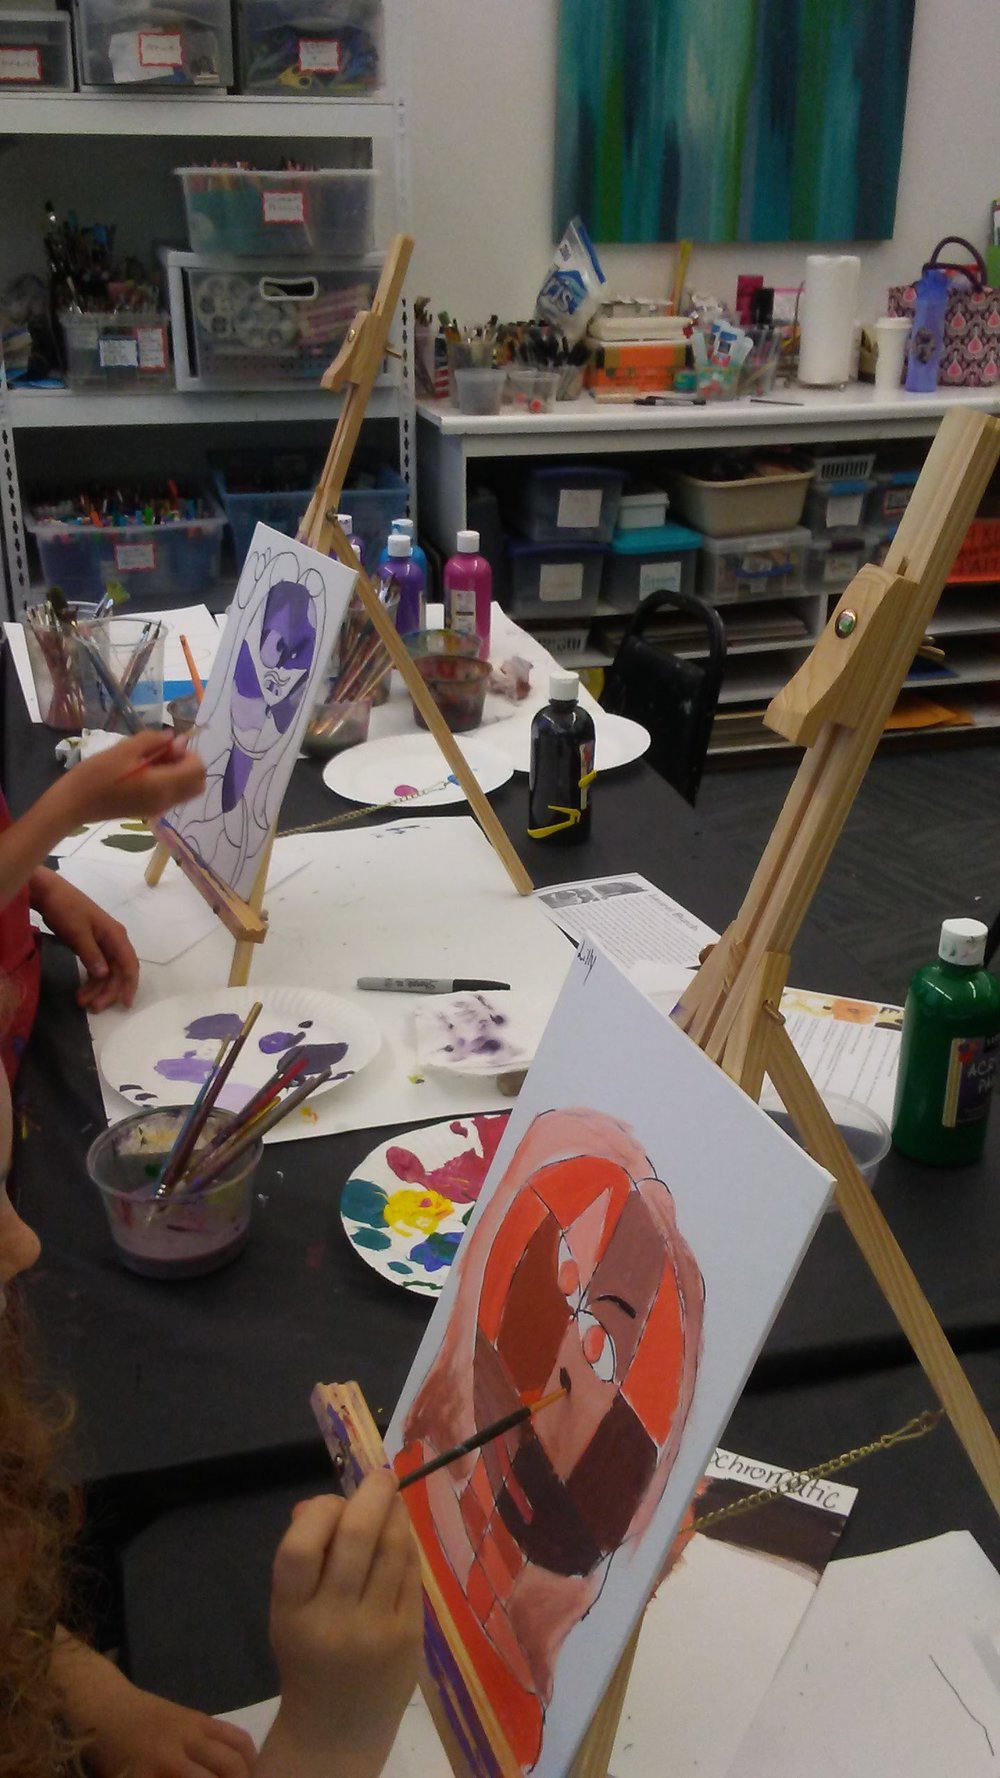 Students creating a self-portrait Klee inspired and monochromatic.